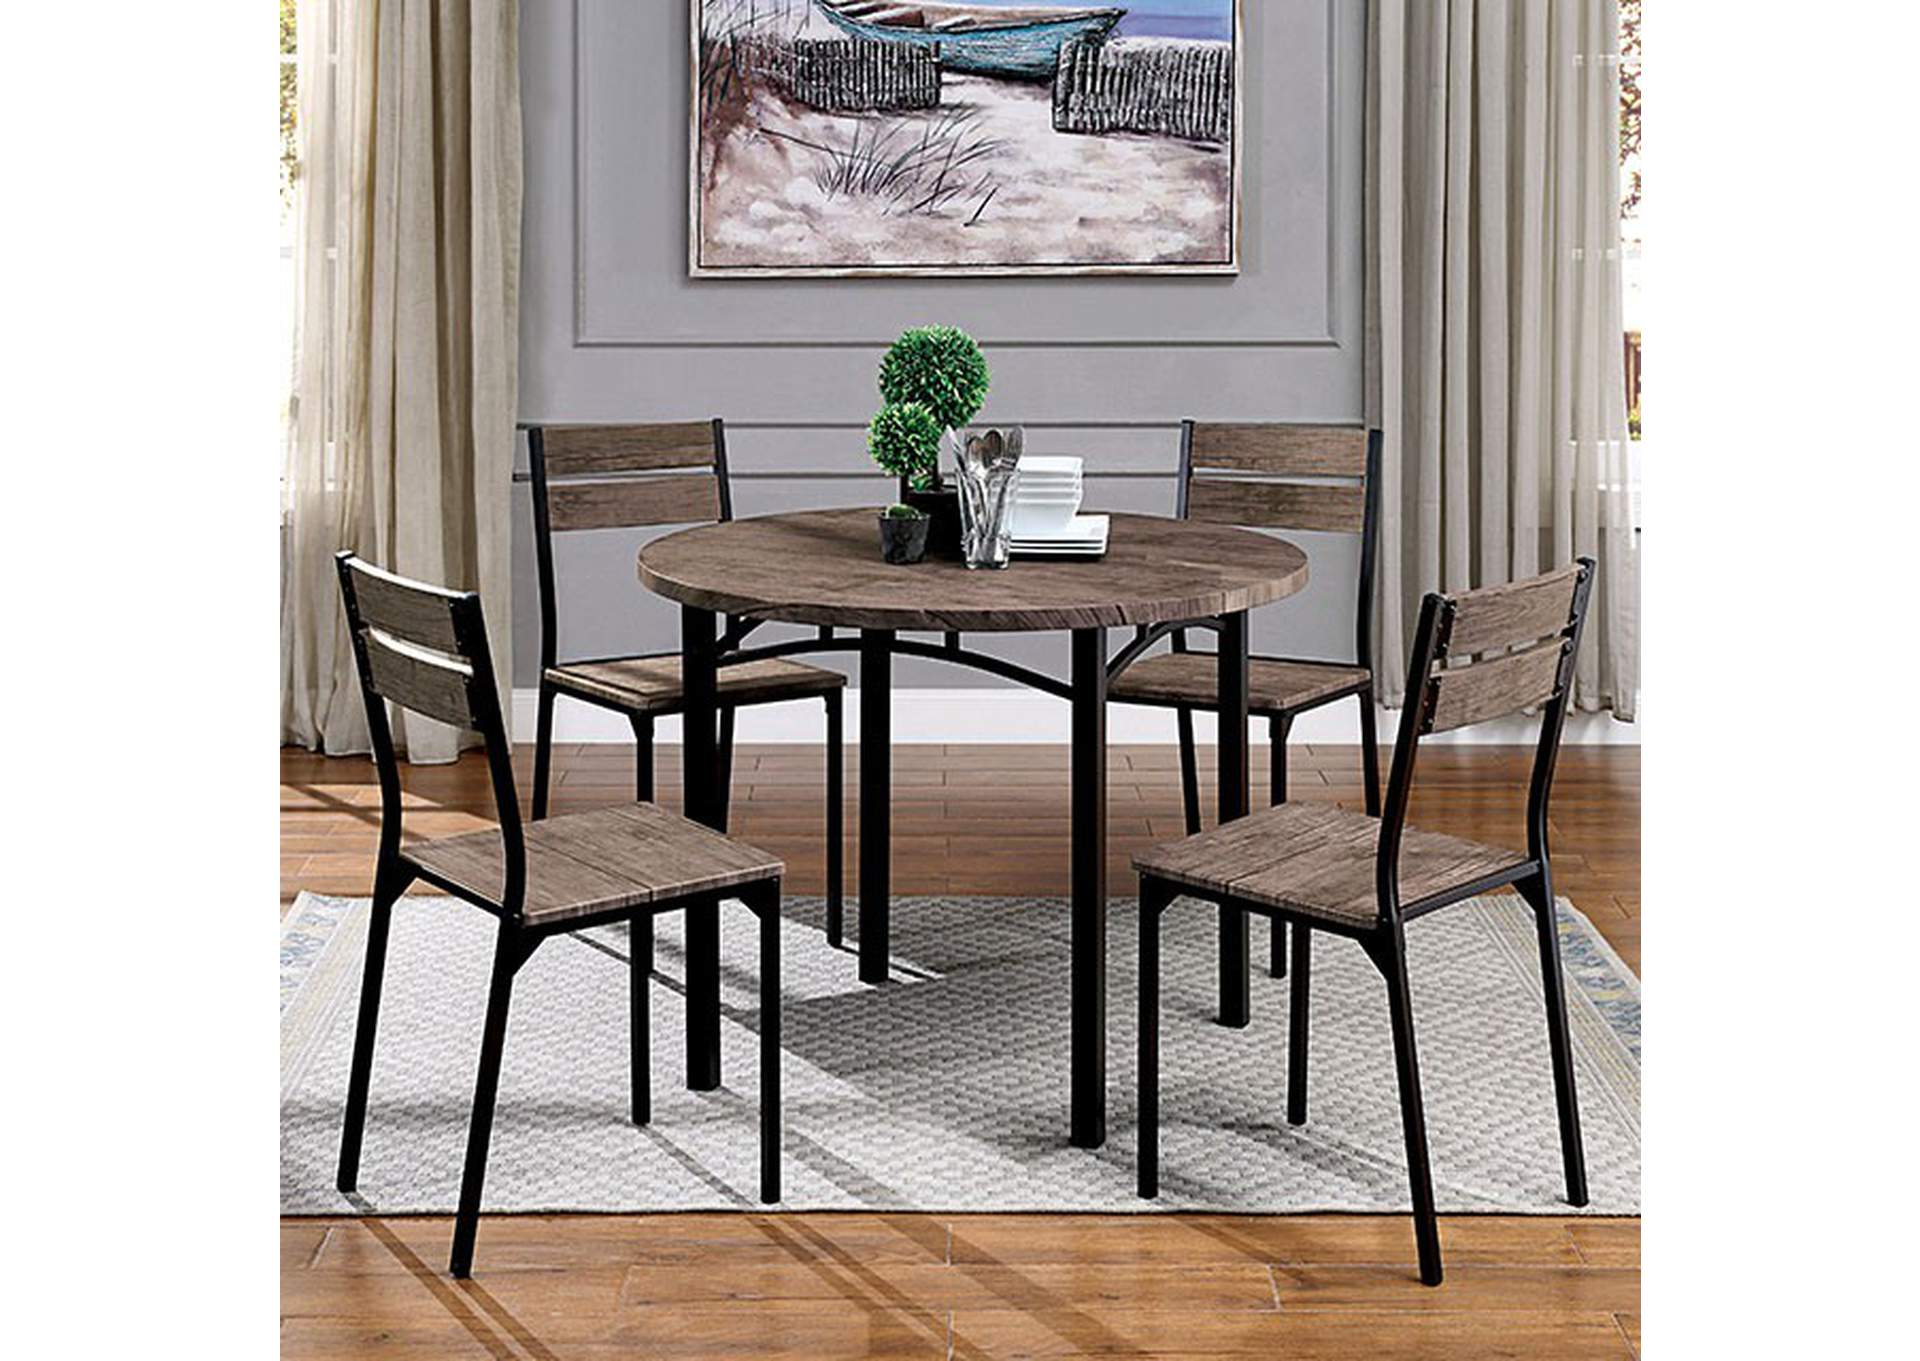 Meade Round Dining Table,Furniture of America